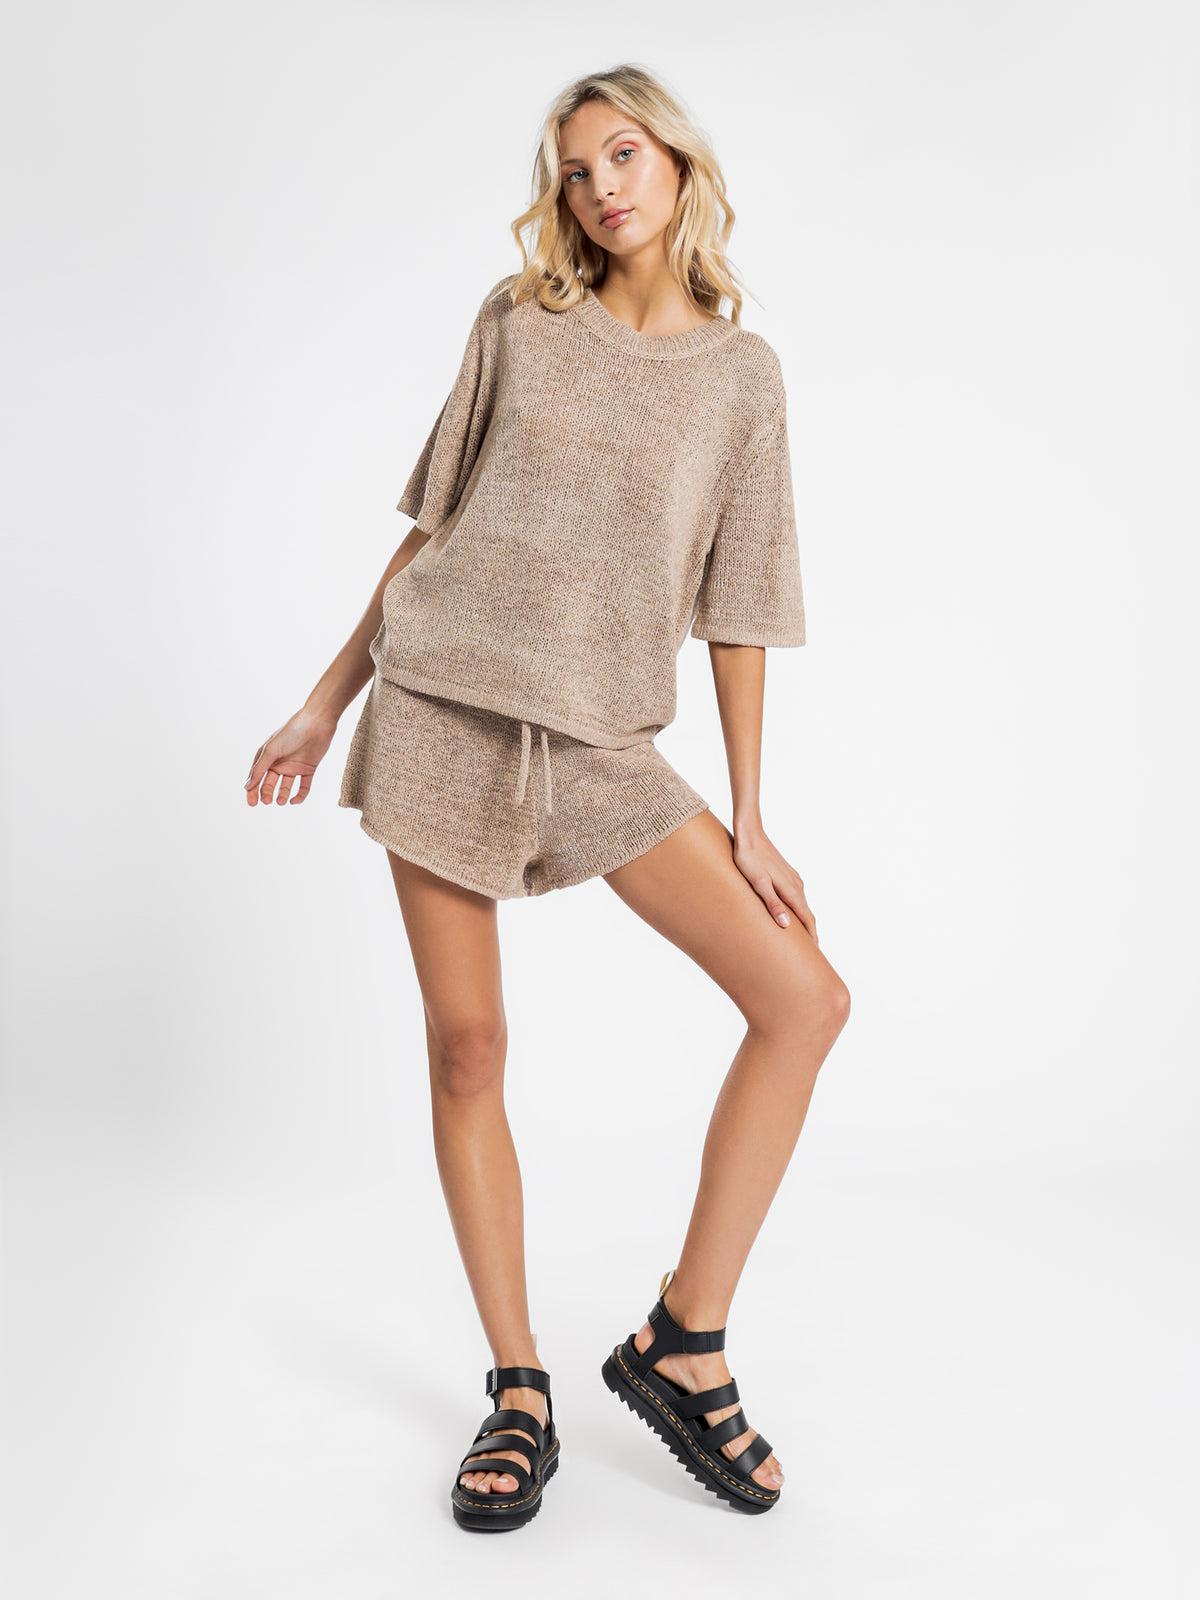 Asha Knit T-Shirt in Mocha